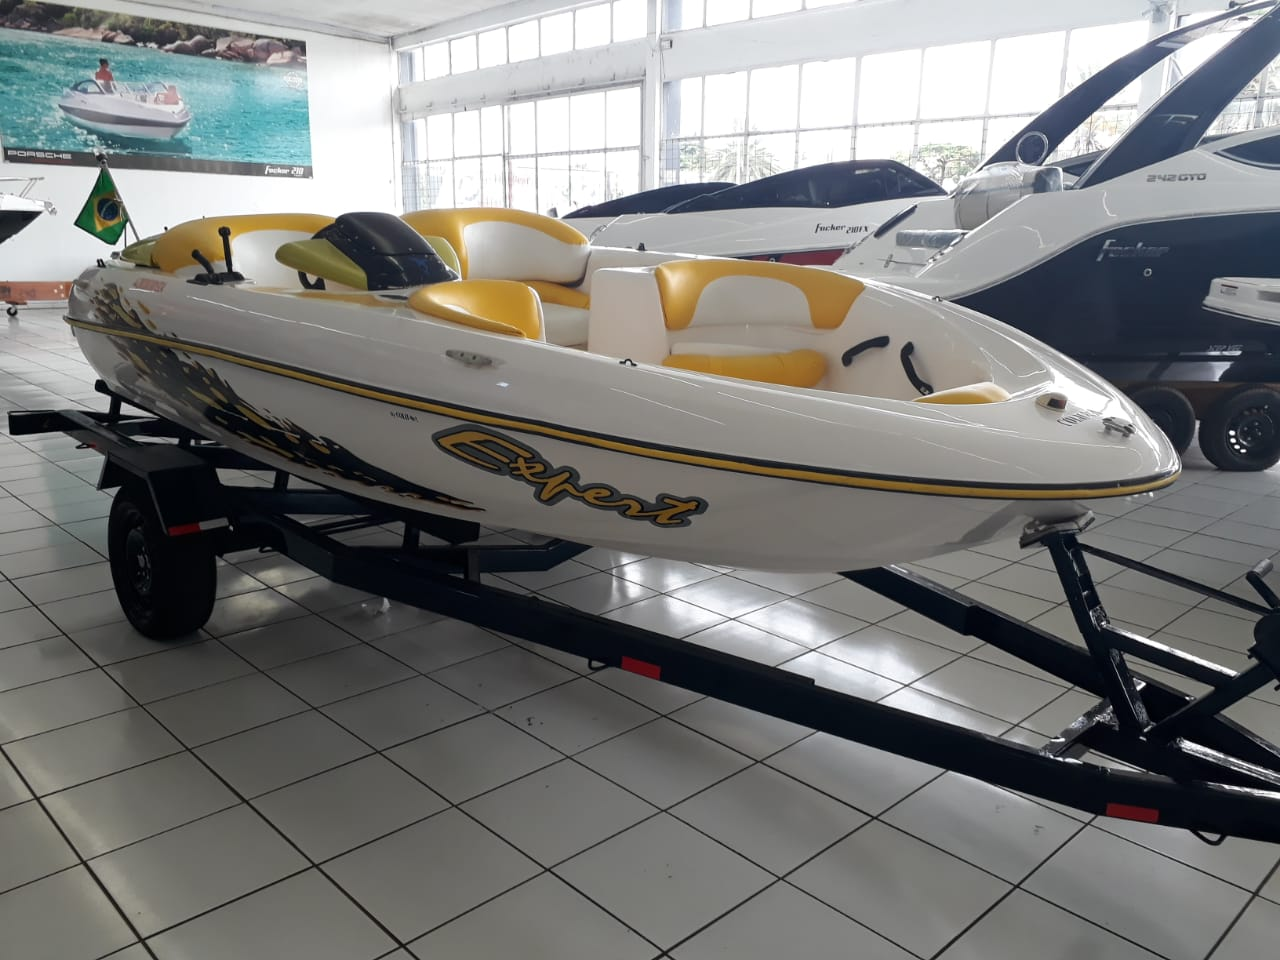 Colunna Yachts Jet Boat XR2-S Especial Edition